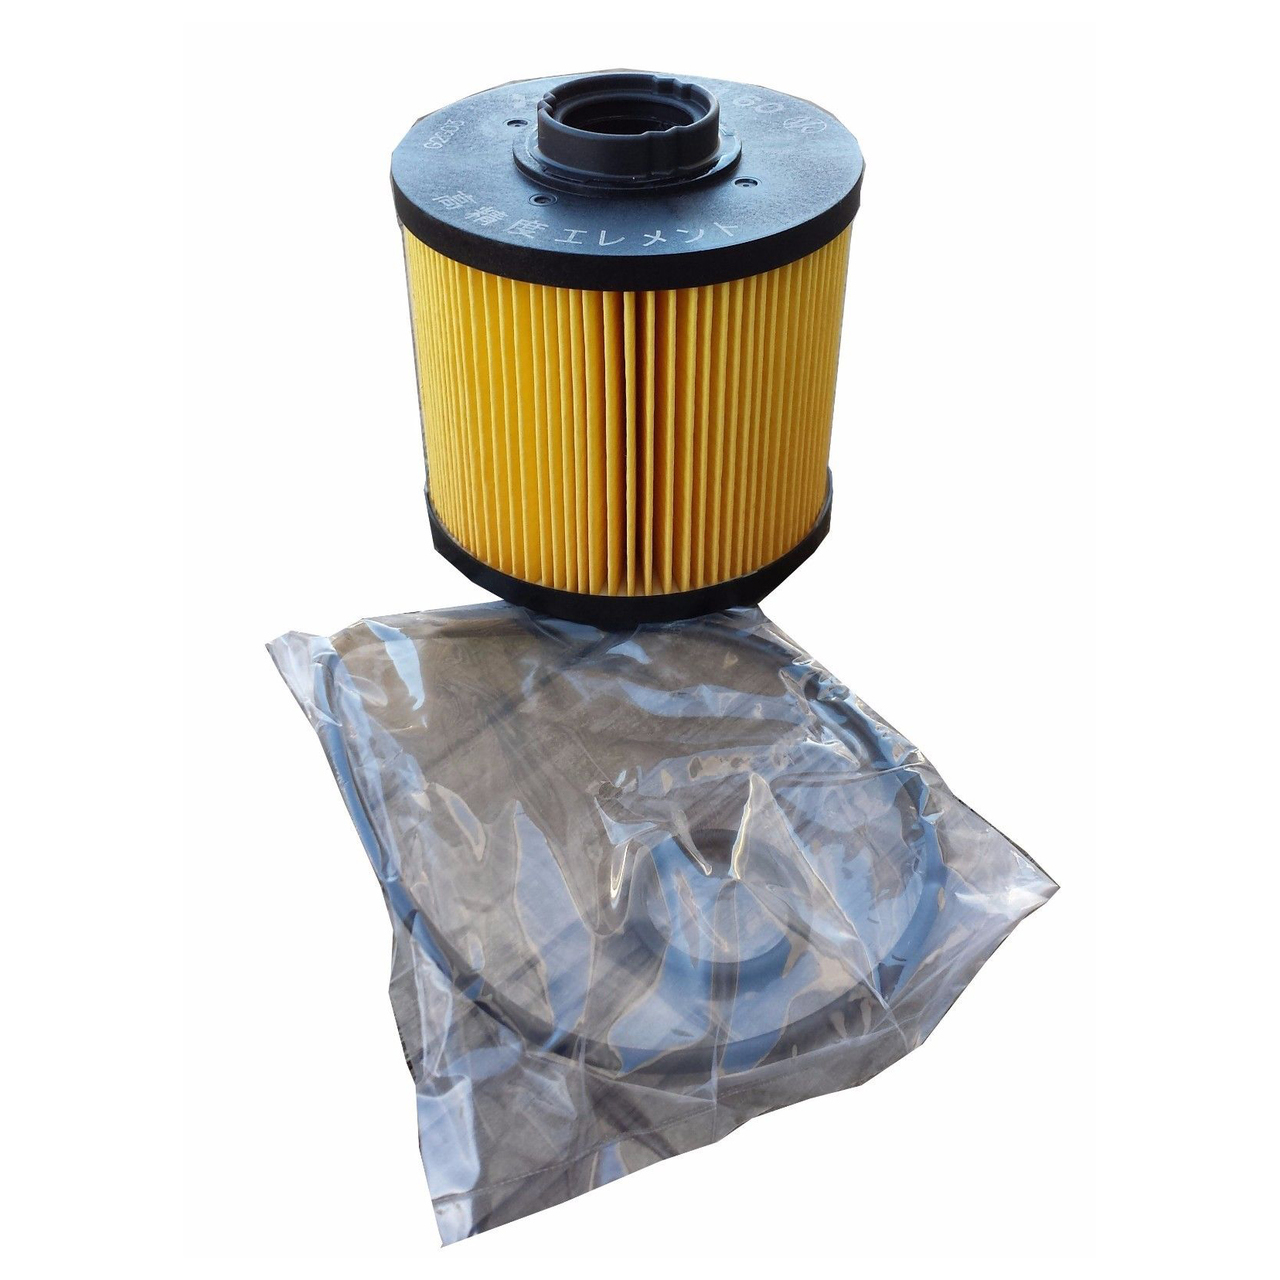 Genuine Mitsubishi Fuso Fuel Filter #ME222135 for Fuso FE, FG  & STERLING 360